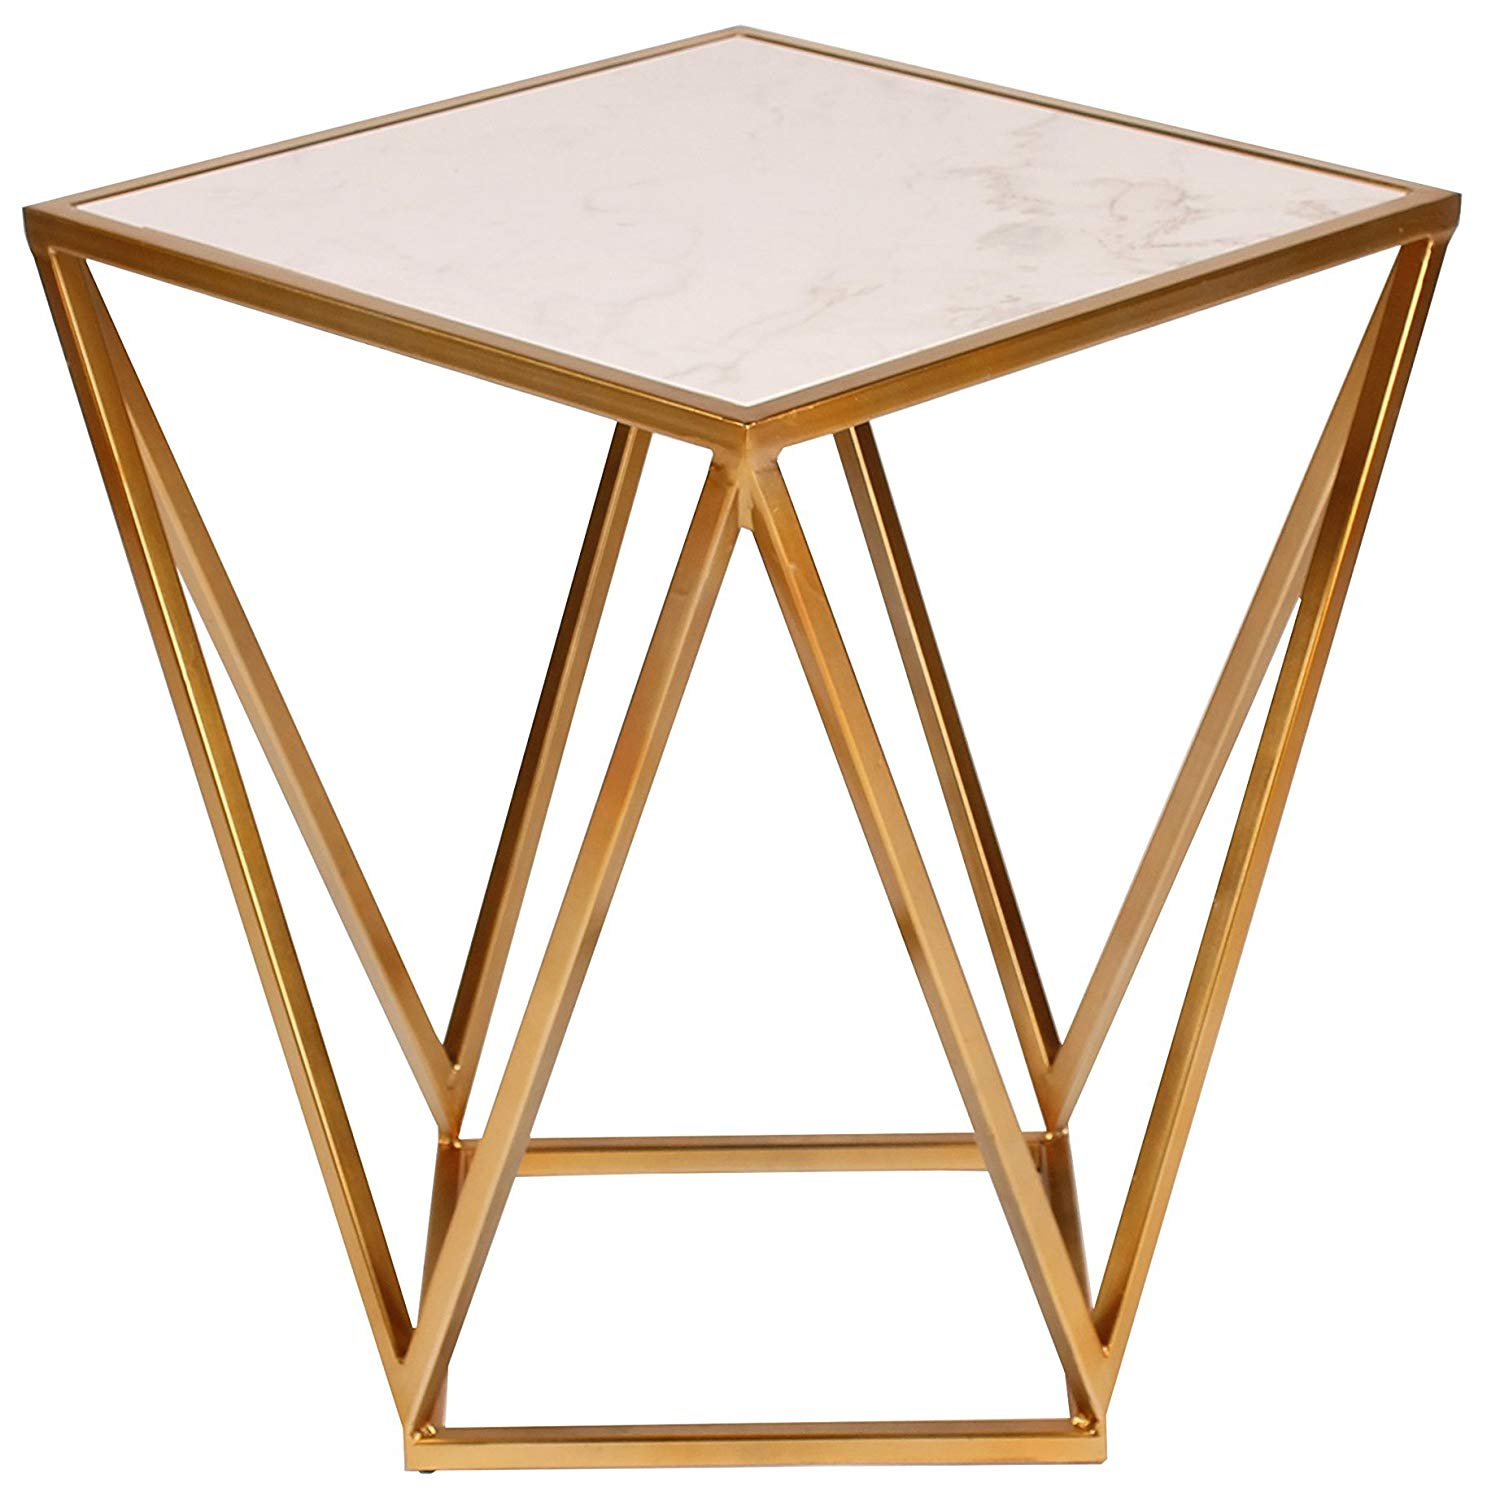 marble top accent tables find gold table with get quotations kate and laurel maia metal side dale tiffany hummingbird lamp retro furniture jcpenney rugs clearance small dresser